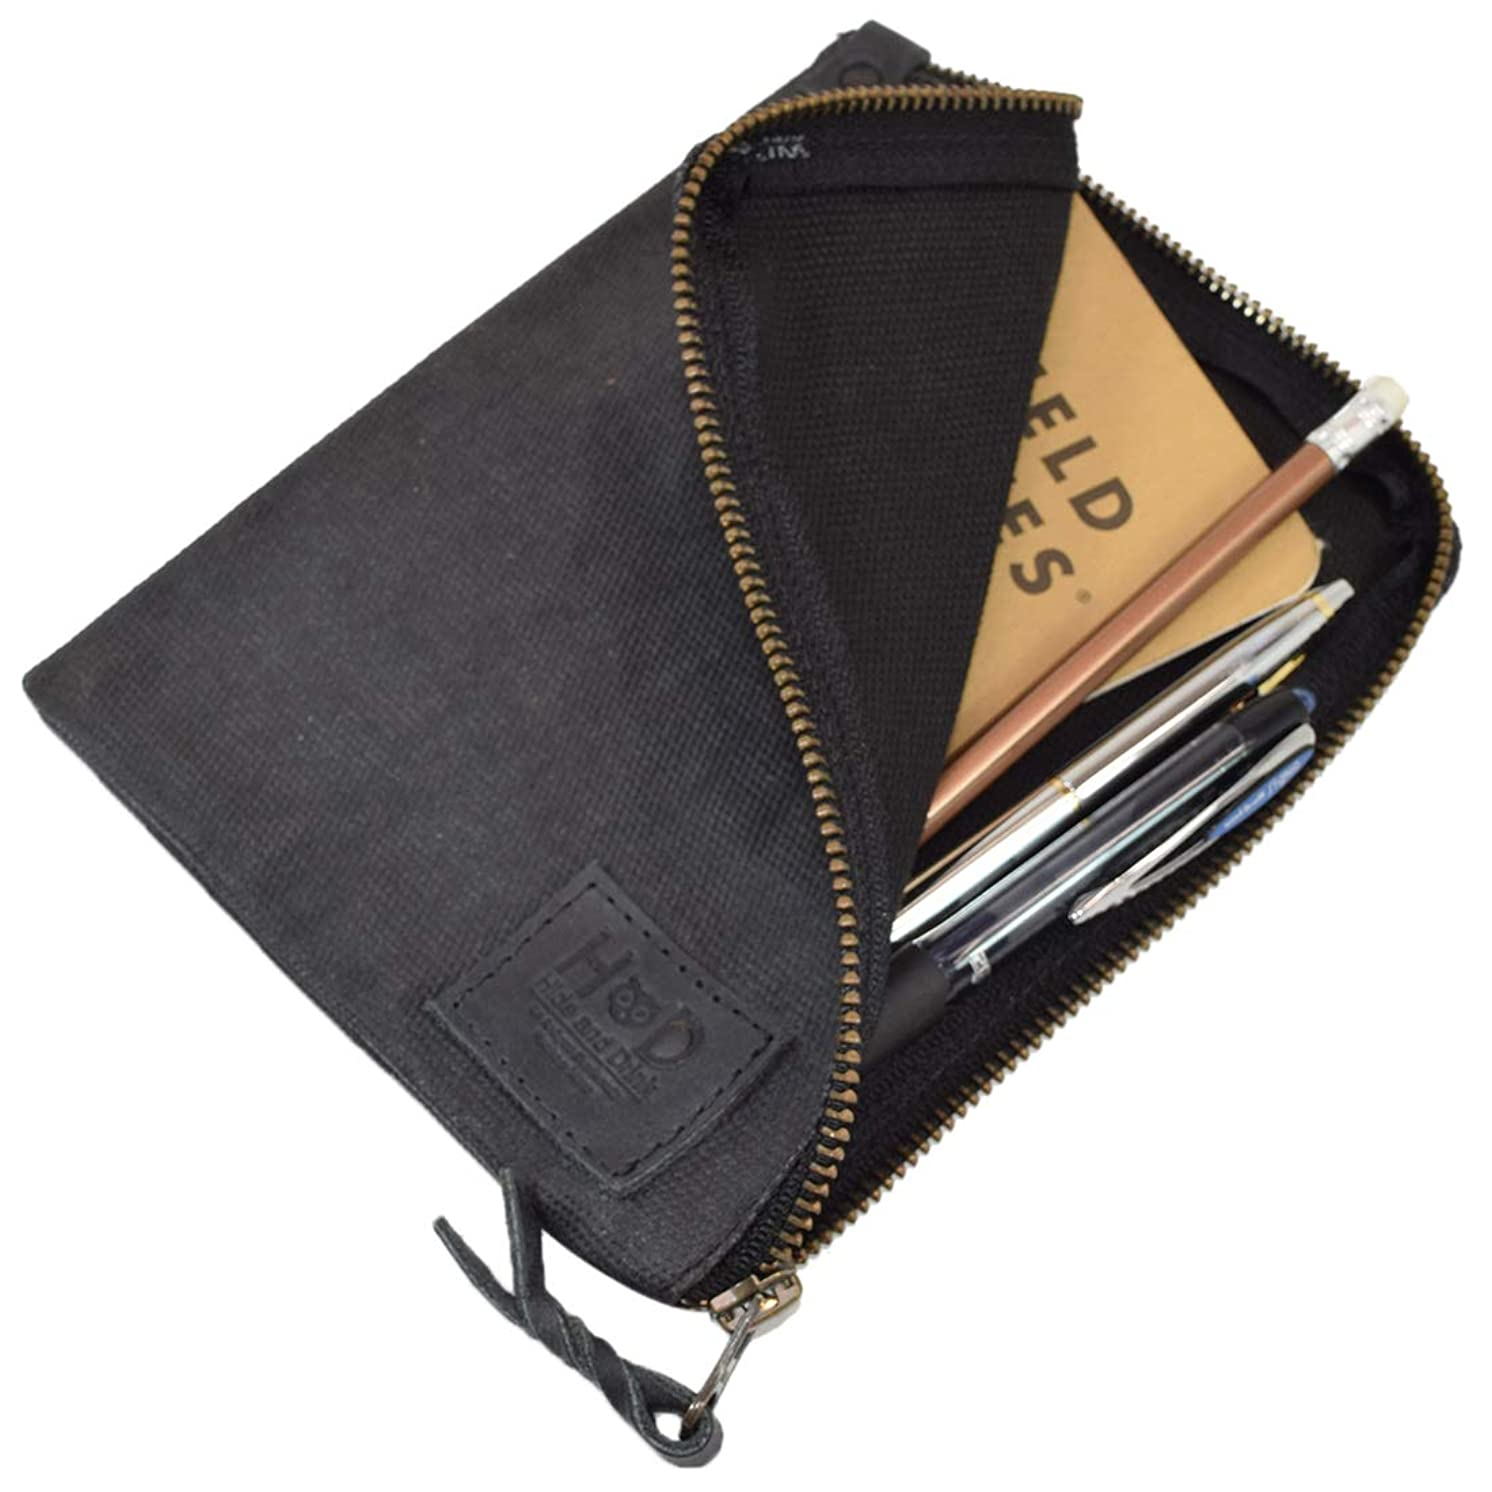 Hide & Drink, Waxed Canvas Durable Scribbler Case for Notebook/Pens, Office & Work Essentials Handmade :: Charcoal Black